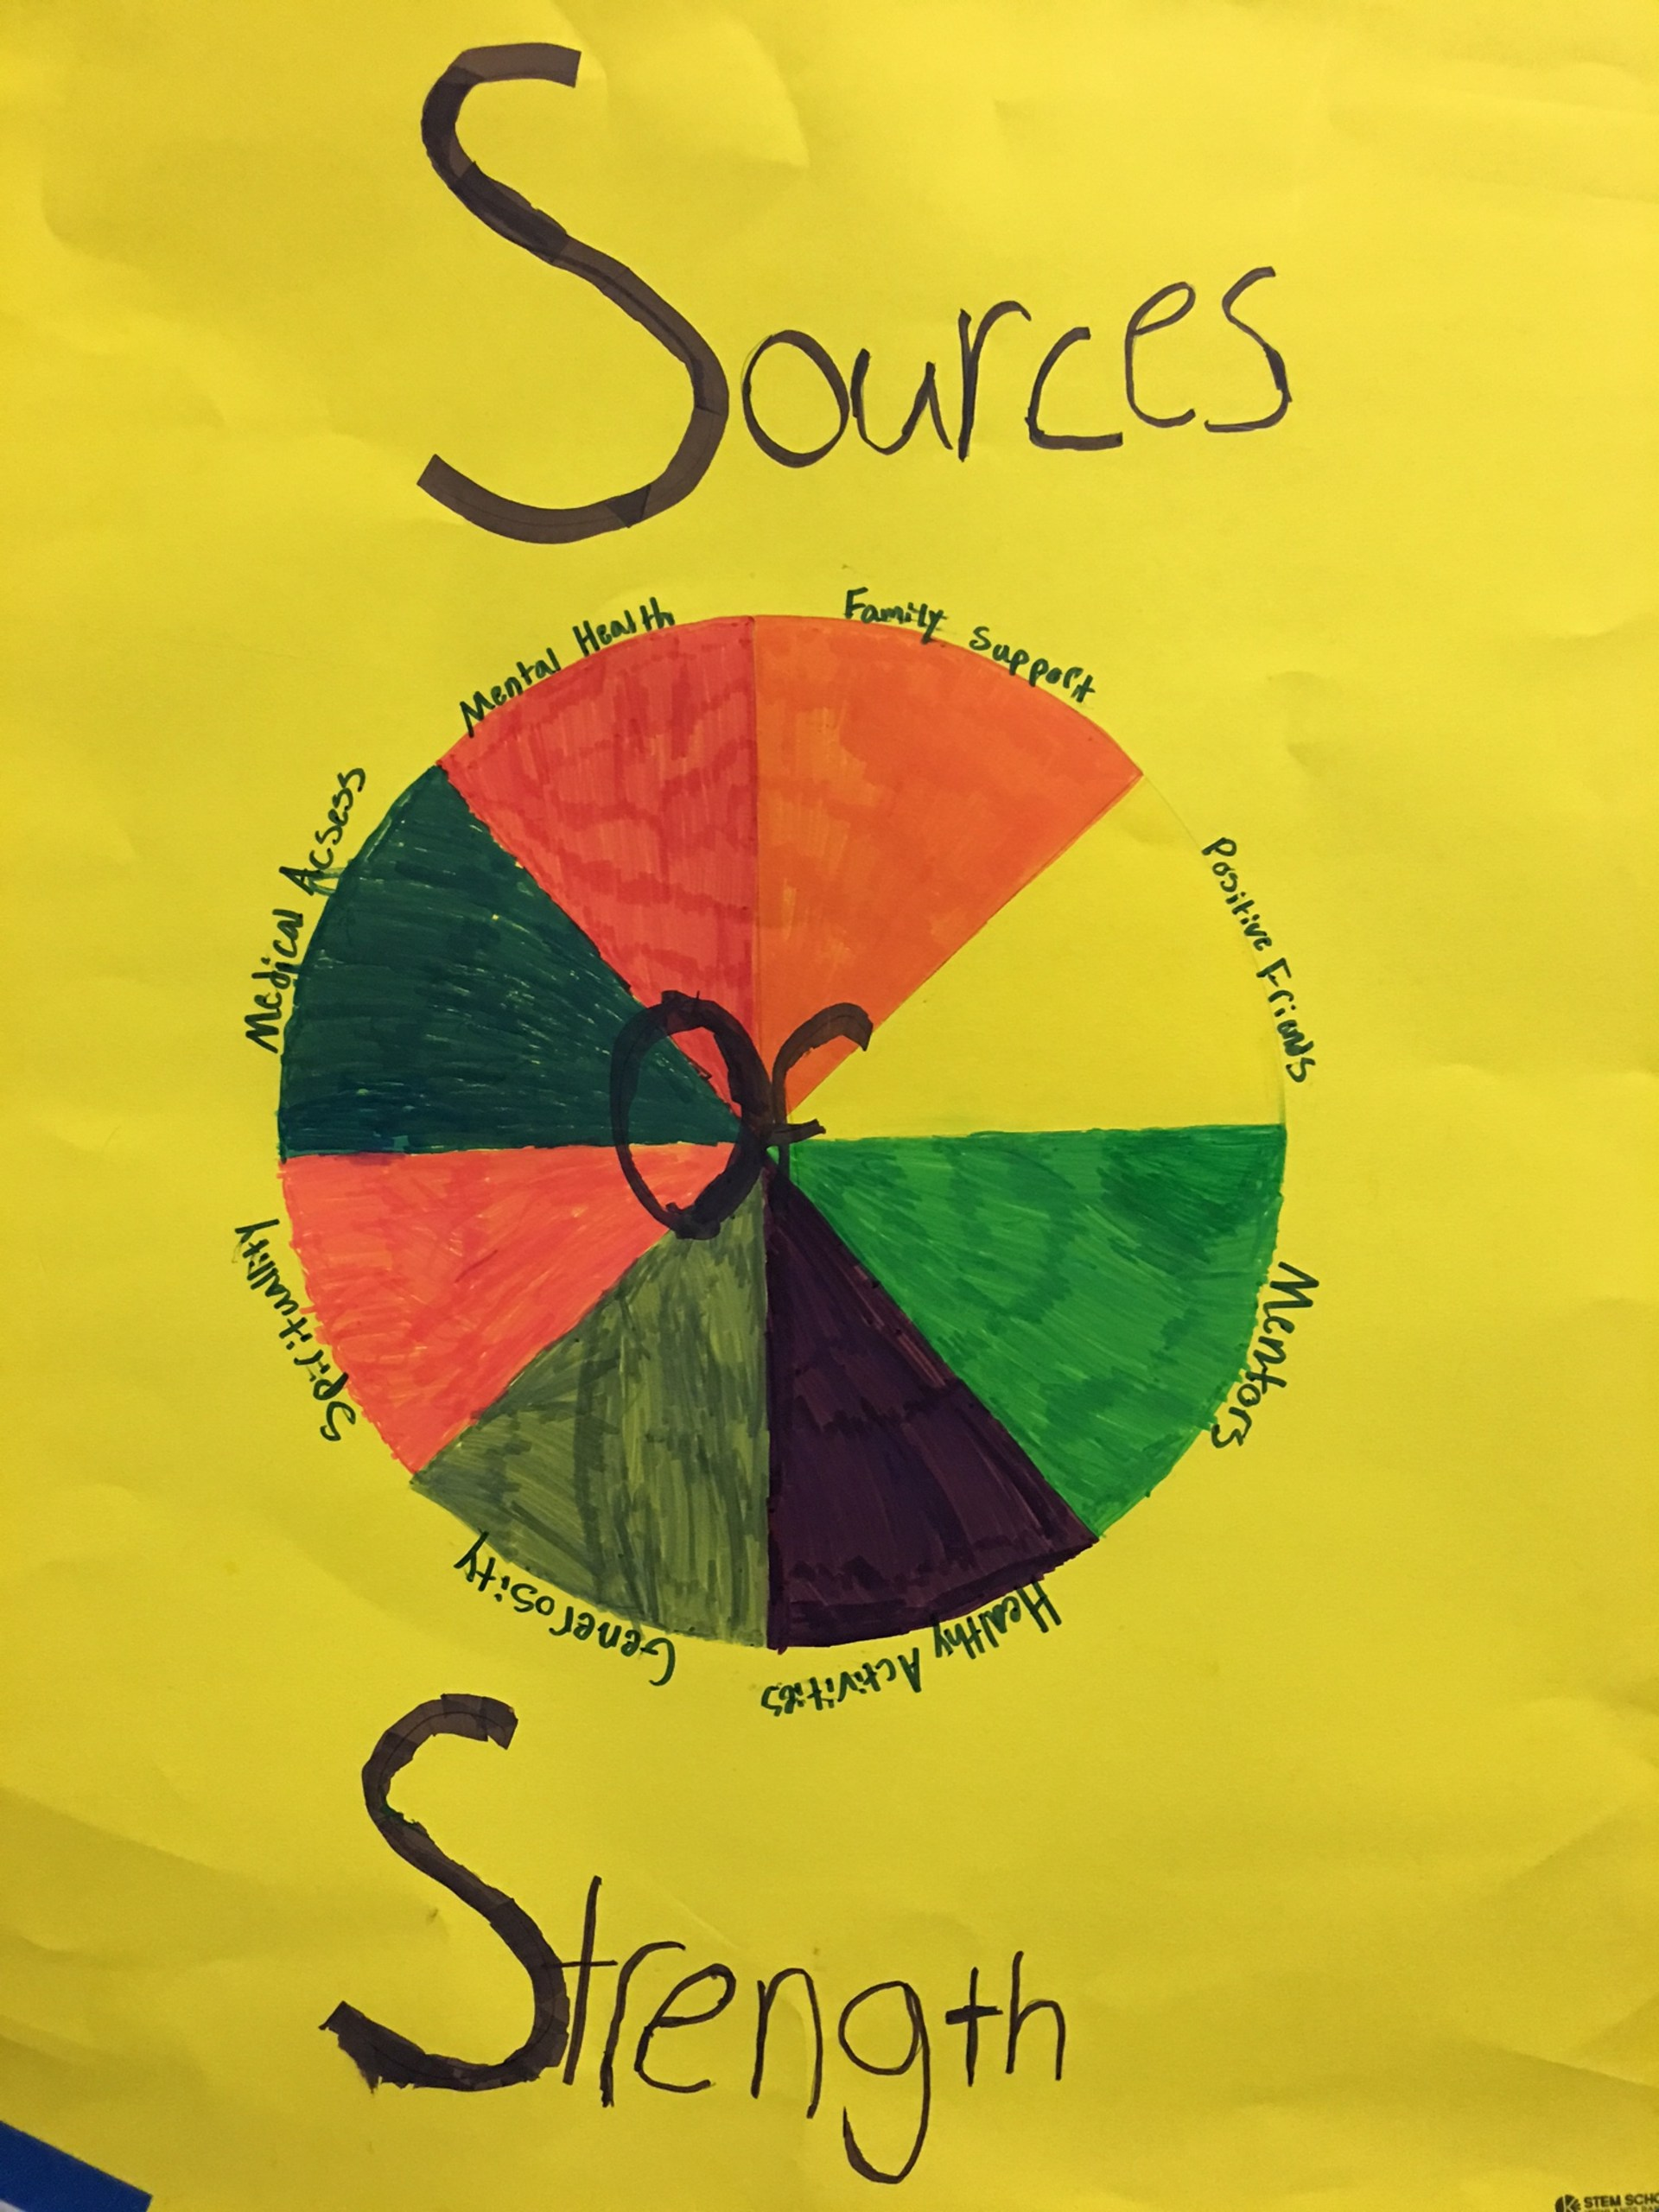 Sources of Strength display